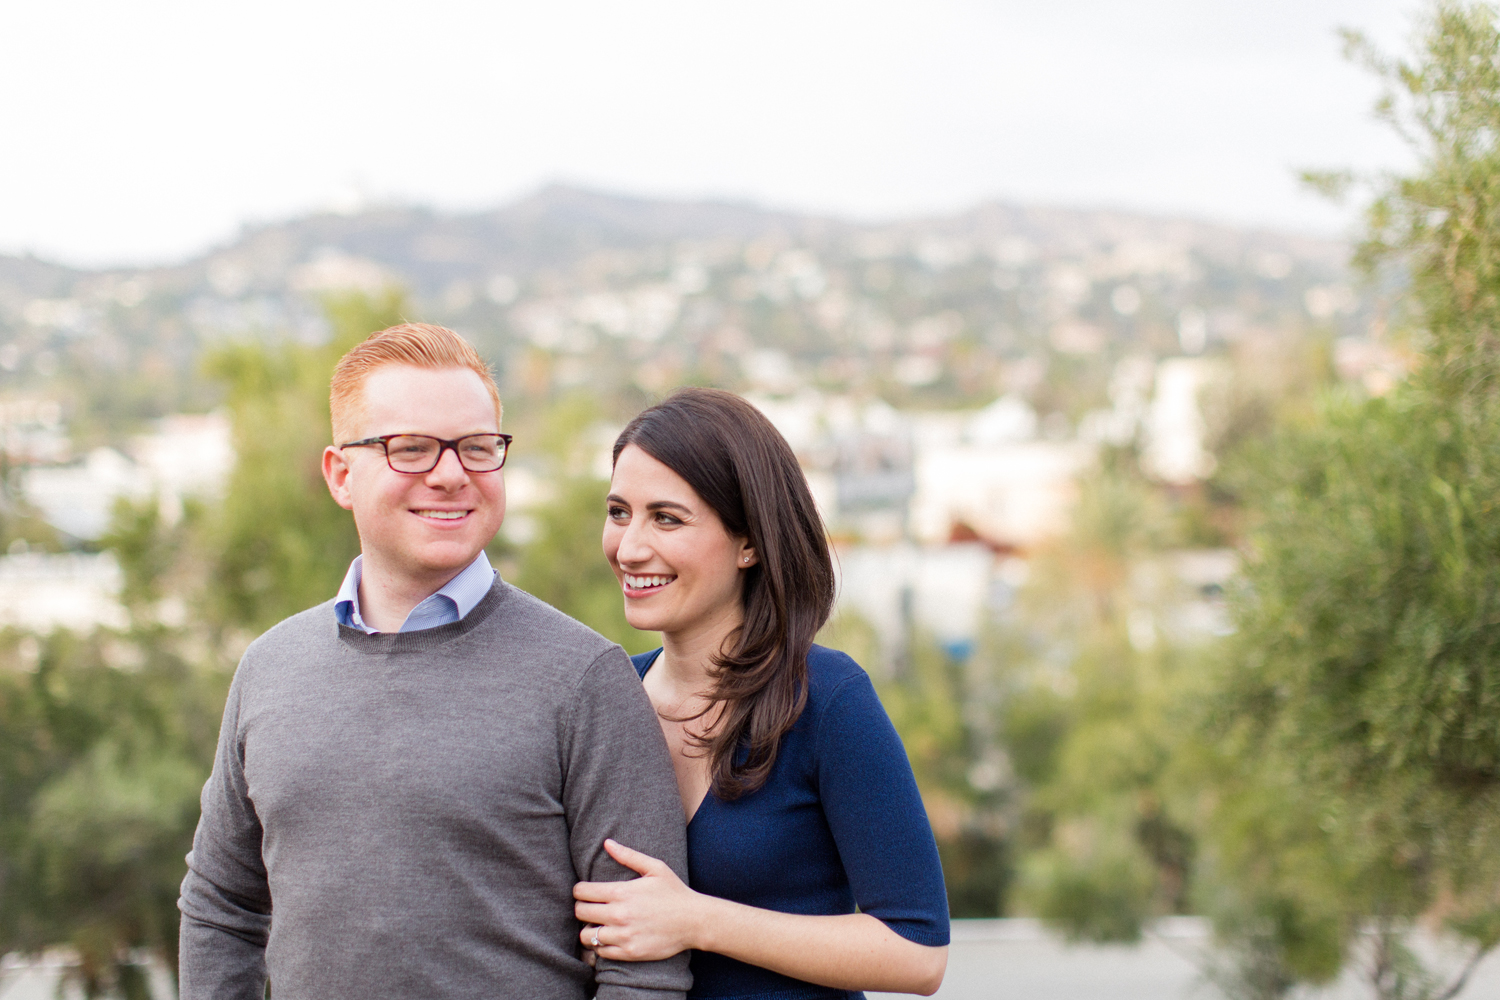 barnsdall-park-engagement-photography011.jpg